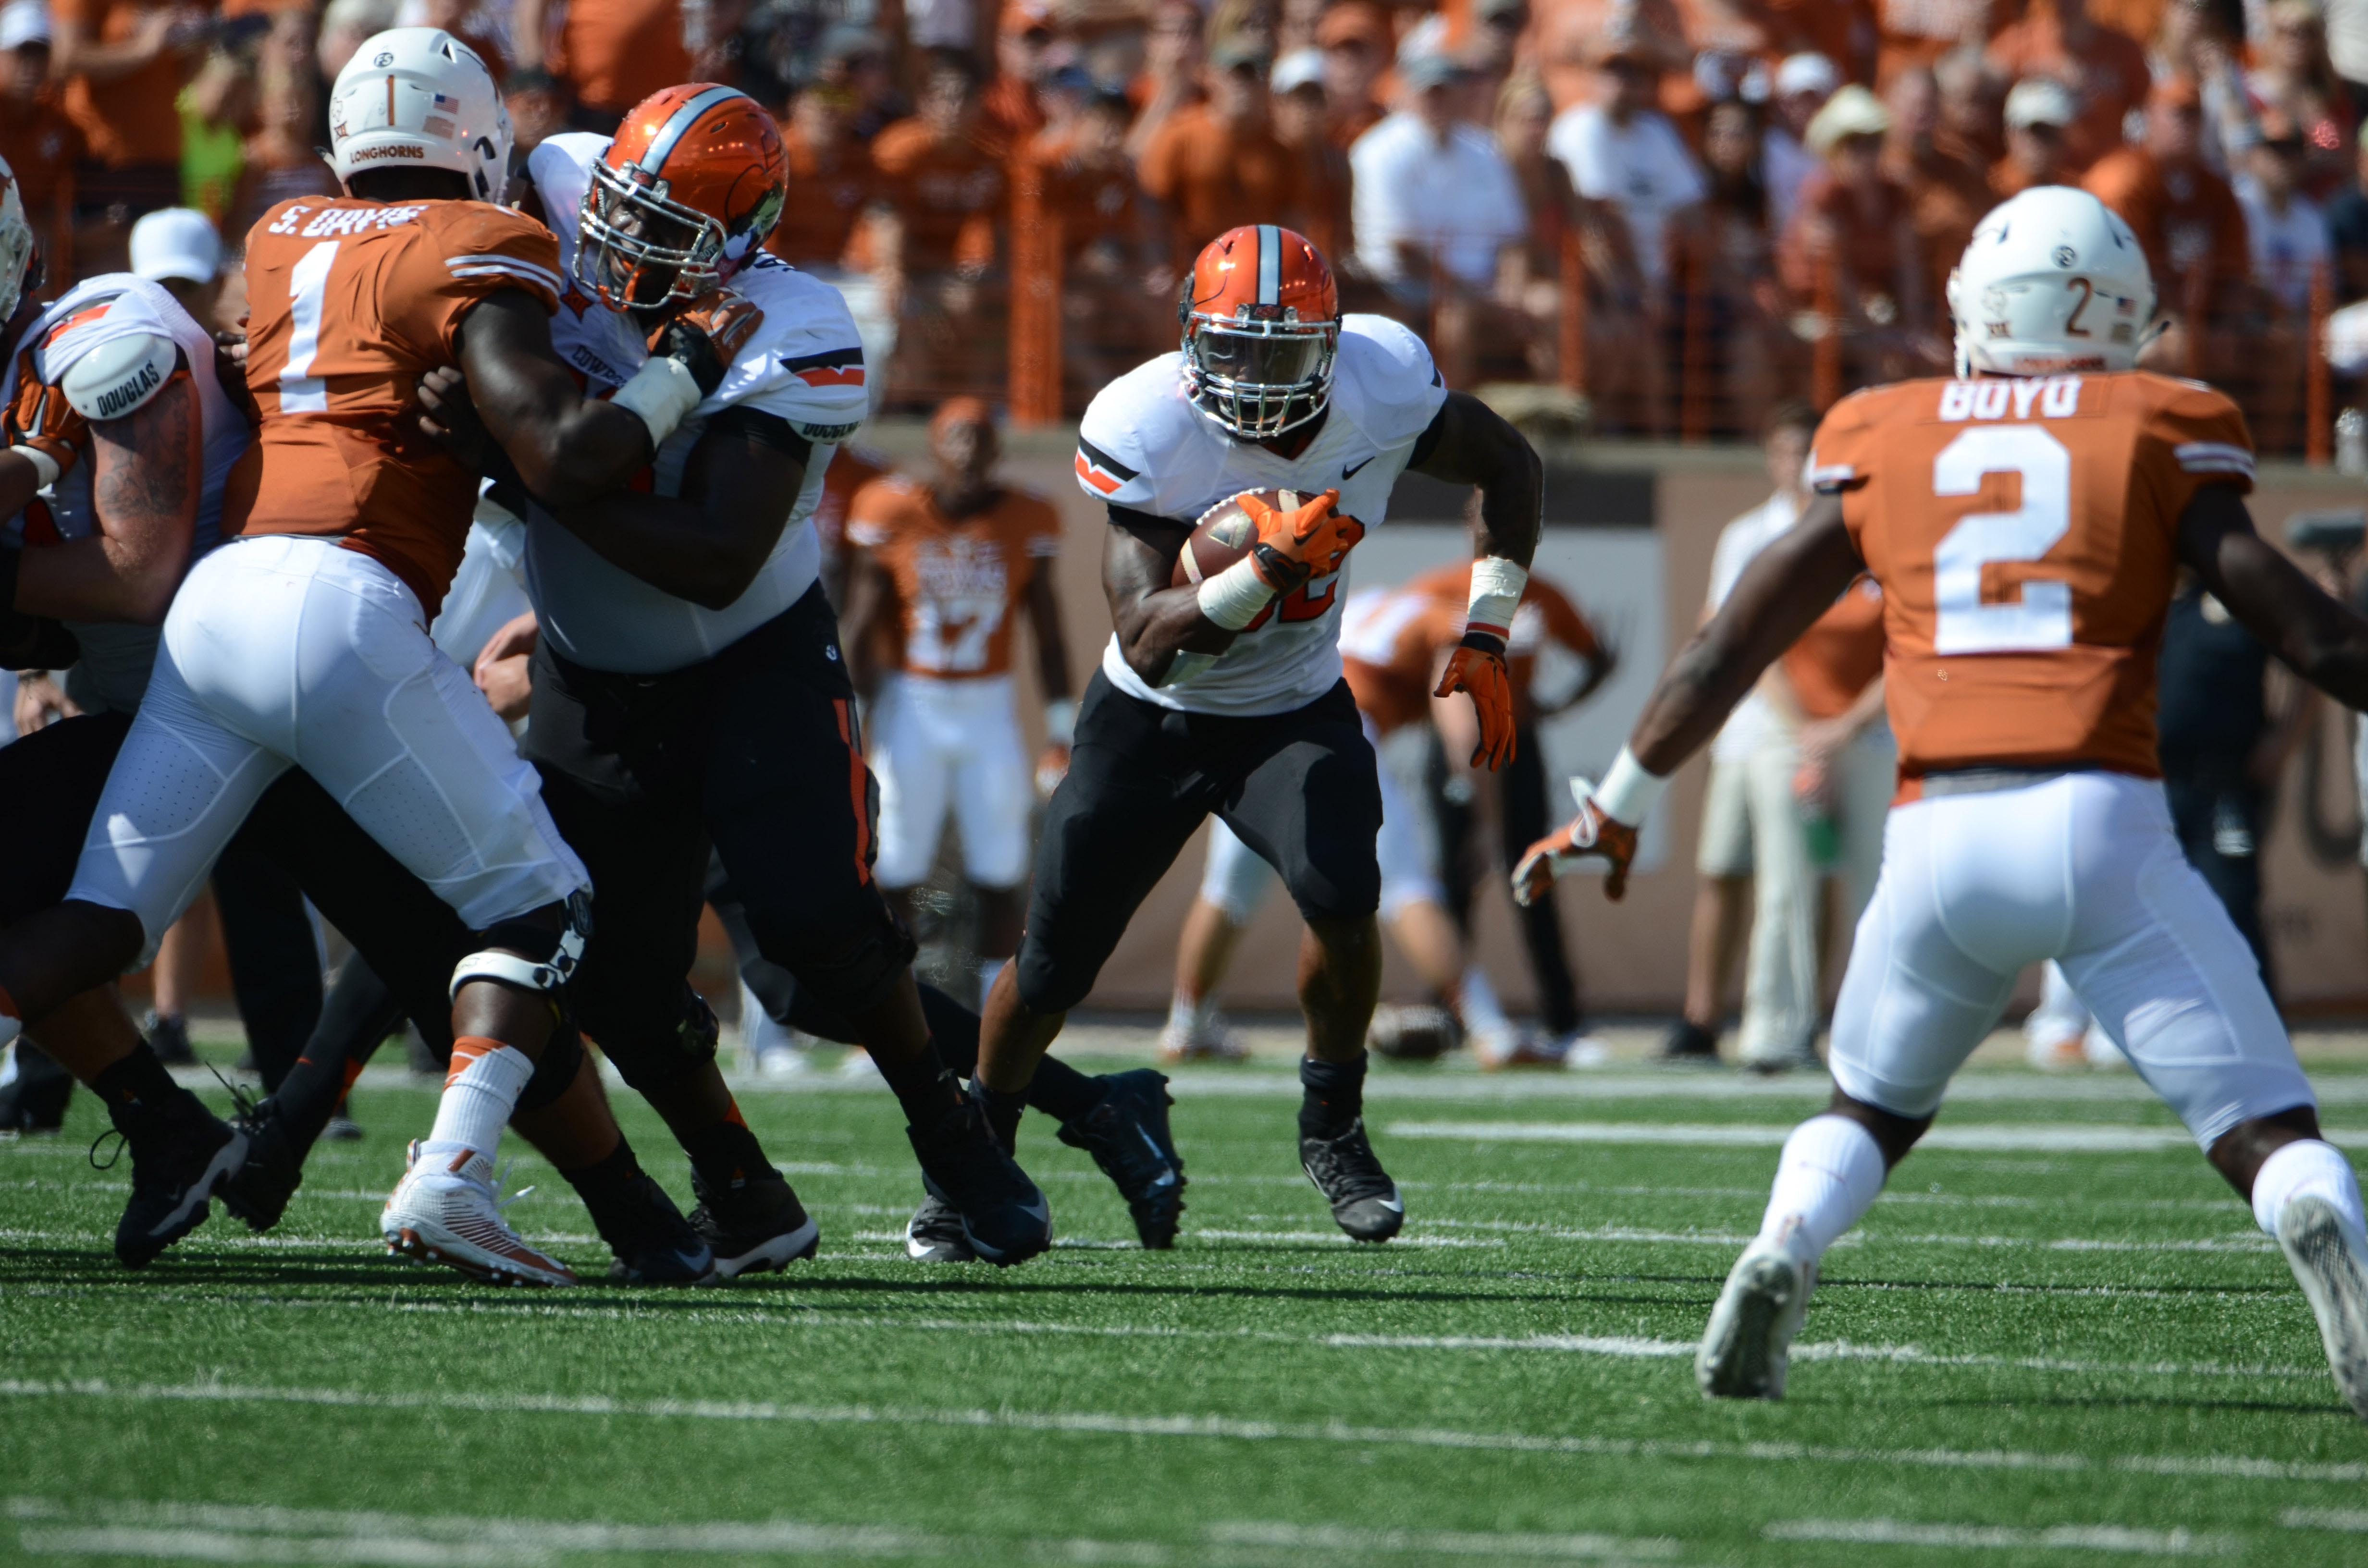 Chris Carson will need to have a good game against WVU